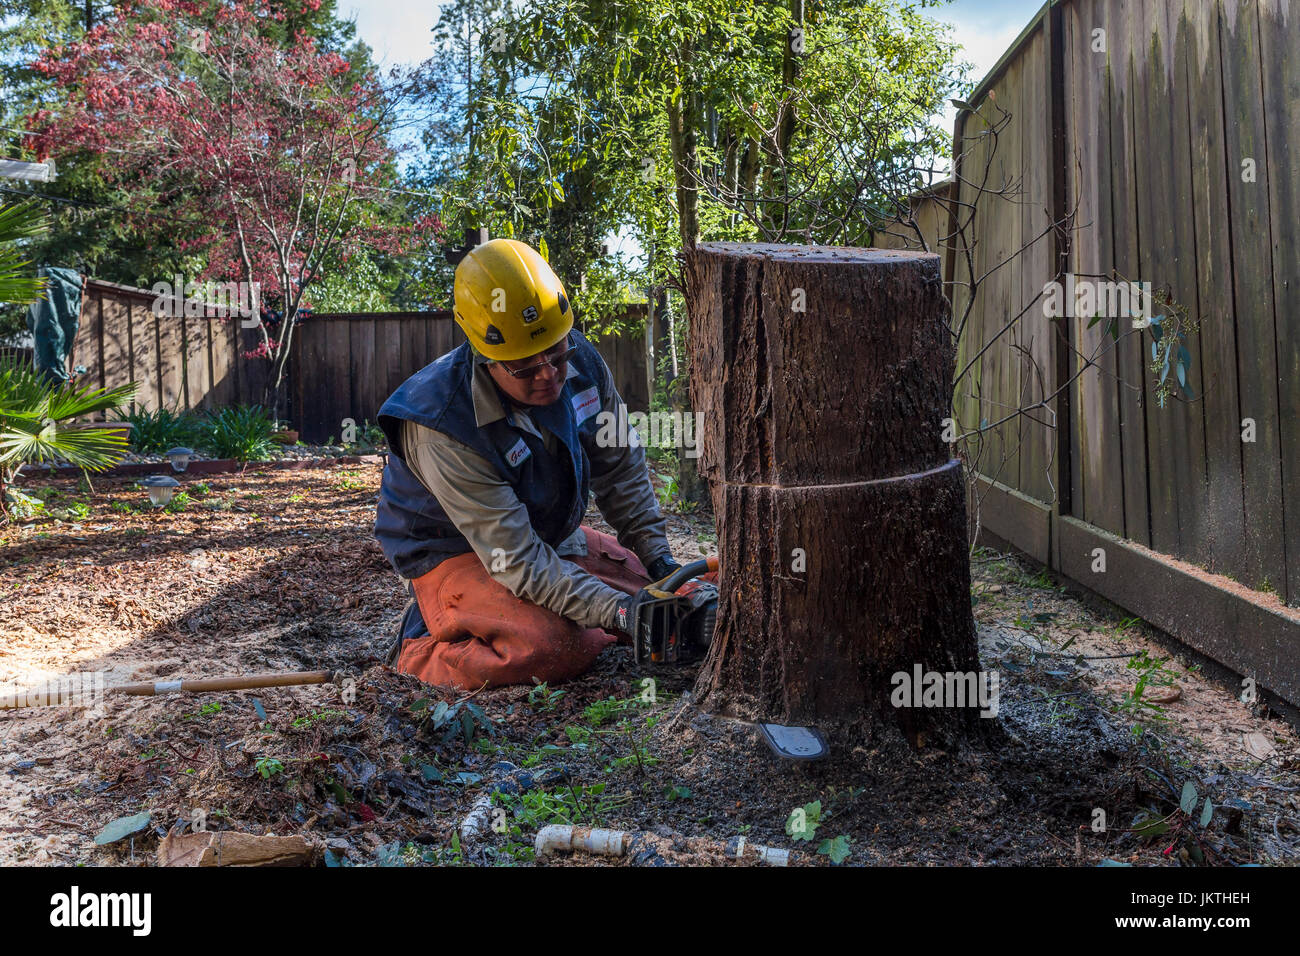 tree trimmer, tree trimming service, cutting down eucalyptus tree, using chainsaw, tree care, lumberman, city of Stock Photo